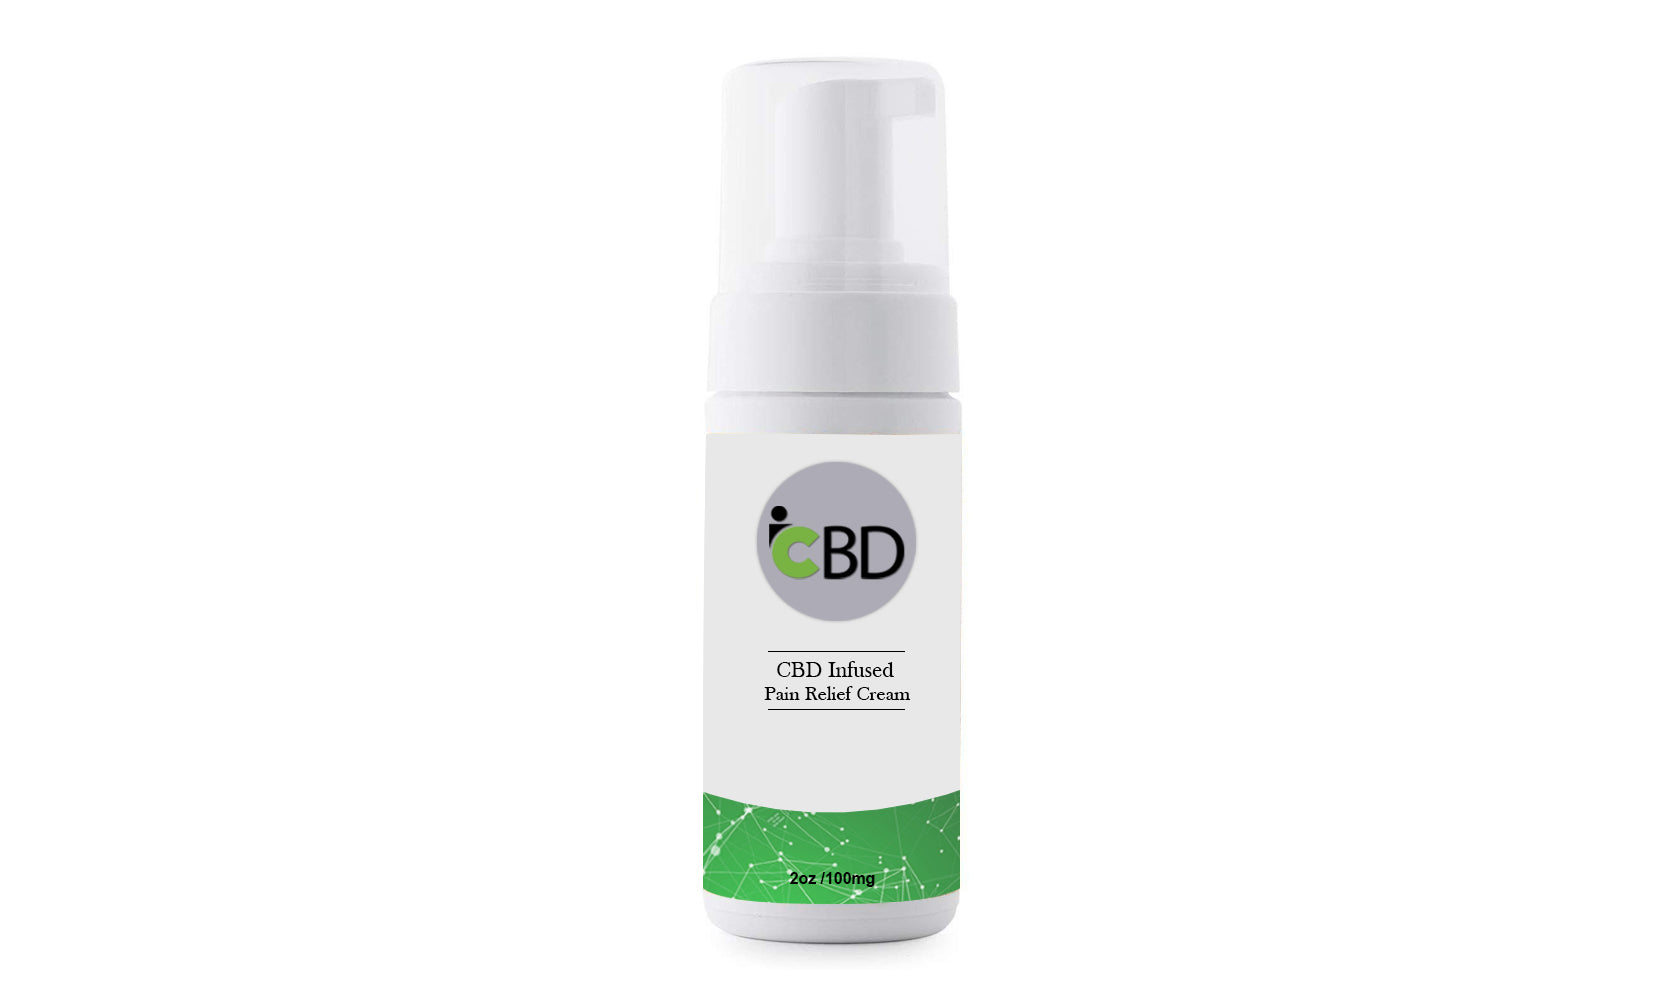 CBD Pain Relief Cream 100mg from iCBD